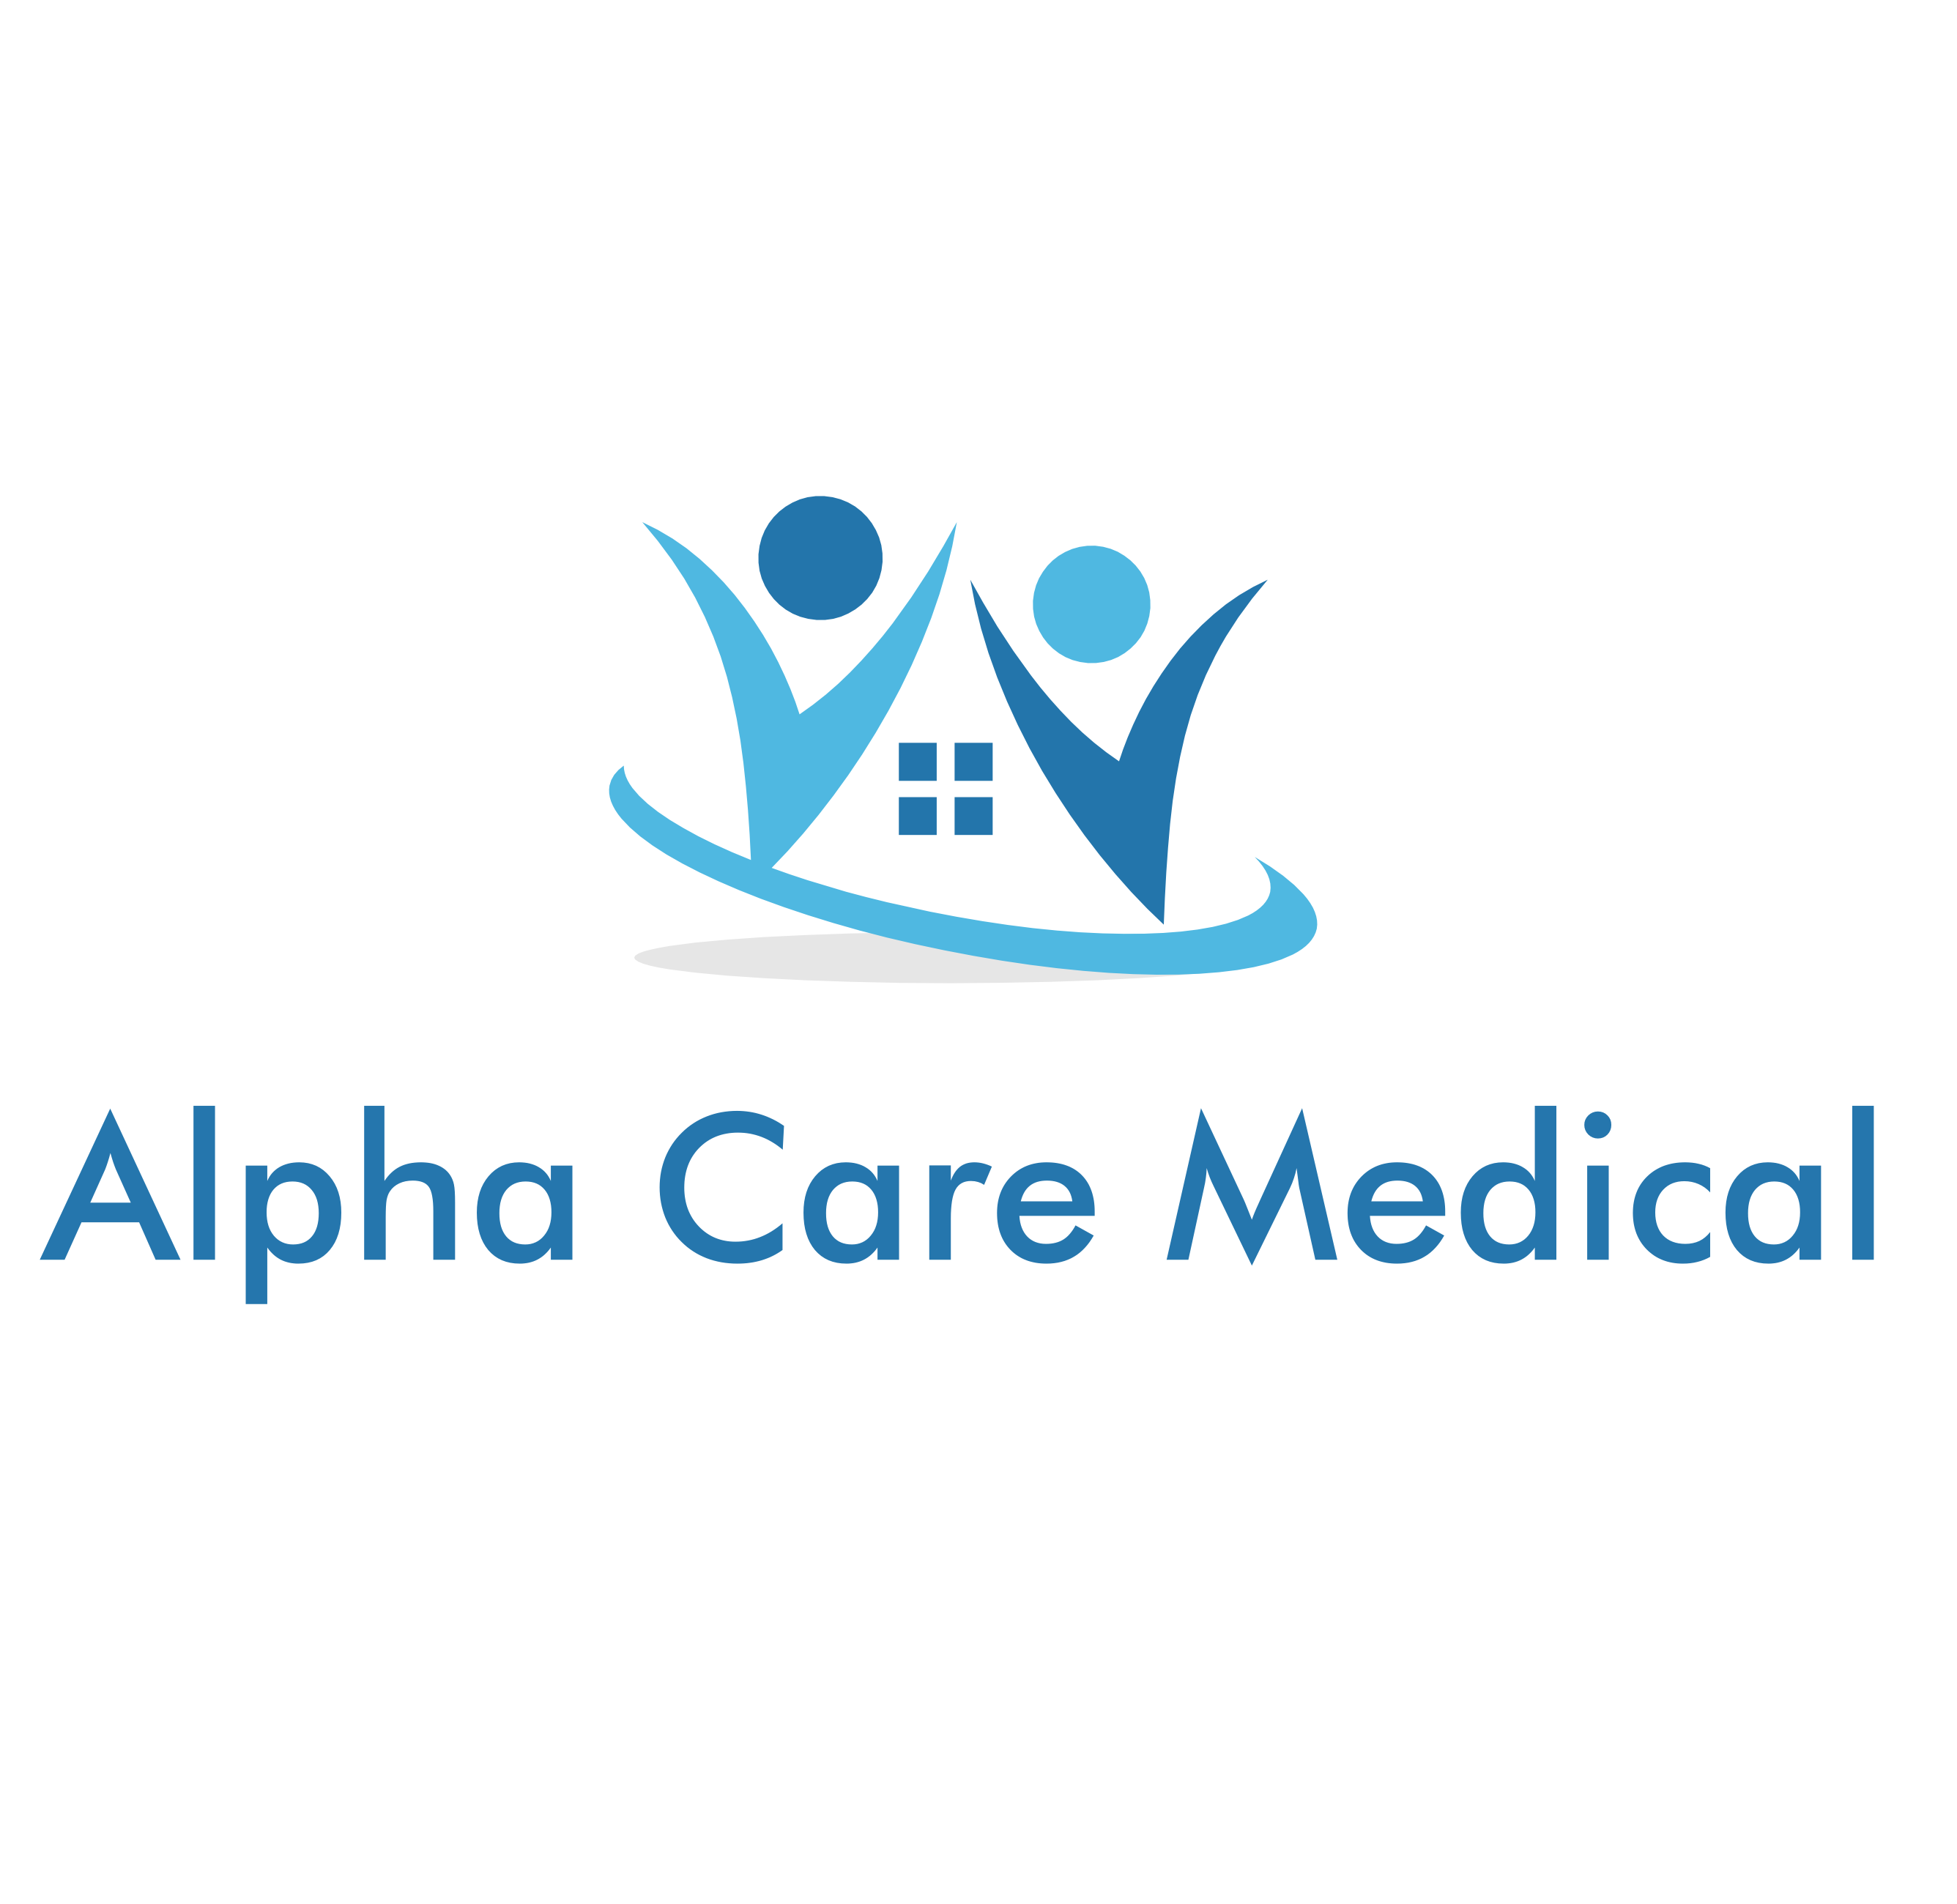 Alpha Care Medical